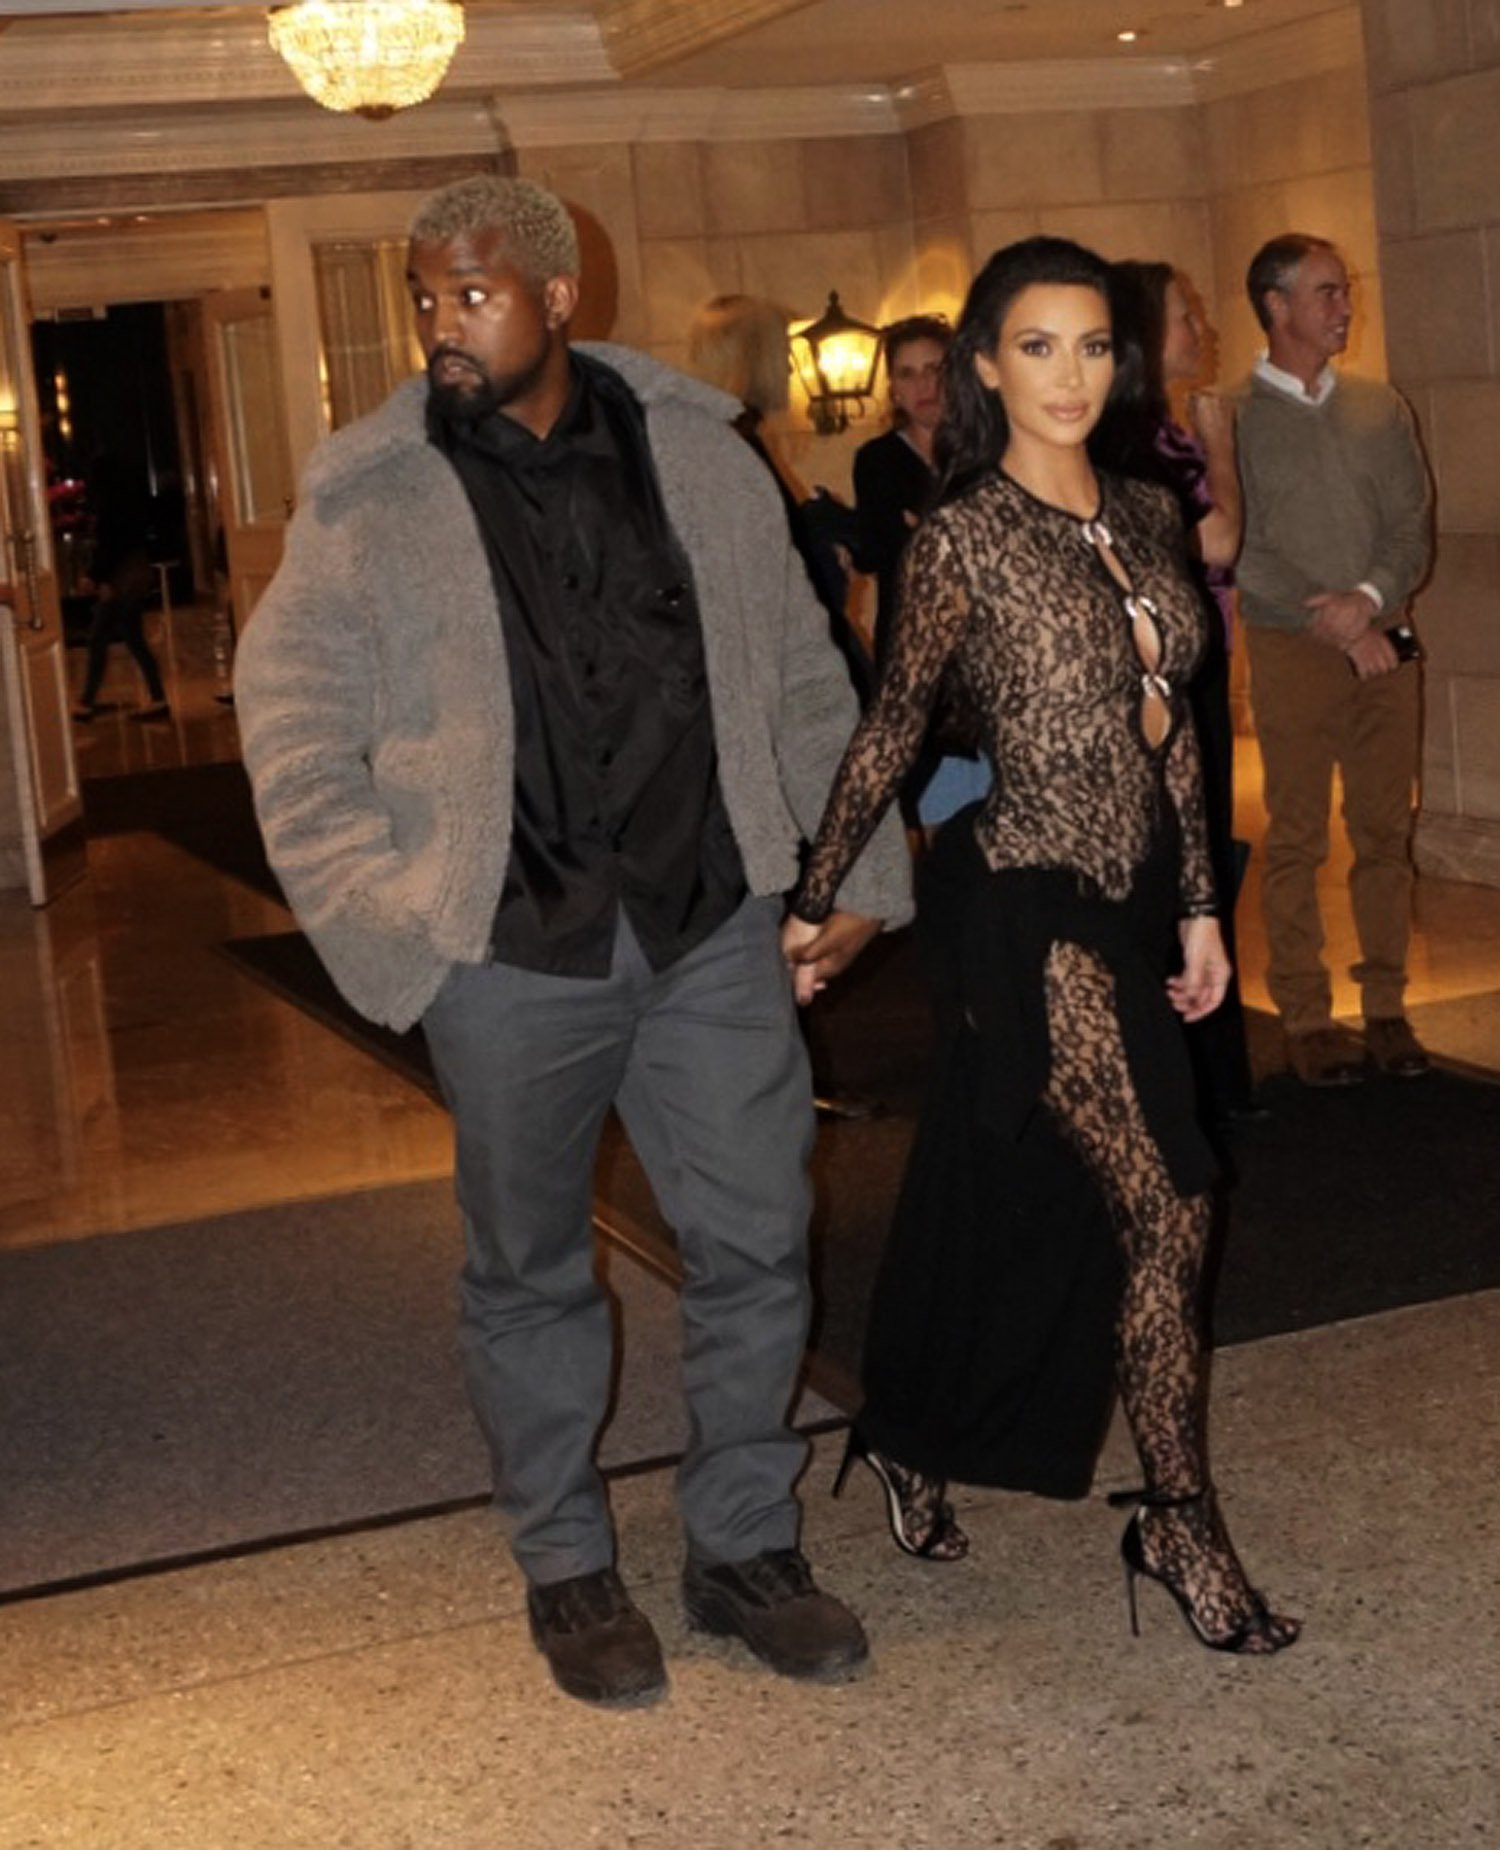 EXCLUSIVE: * Min Web / Online Fee 250 GBP For Set * * Min Print Fee 250 GBP PP * Double For Pg1 * Kim Kardashian looks stunning as she wears a sheer form fitting bodysuit as she has all eyes on her as she is joined by husband Kanye West while leaving their hotel in San Francisco. The couple had a fancy date night out together and were close to each other as she smiled while the hotel guests looked on. The couple was seen later in the evening at John Legend???s 40th birthday, suggesting they flew back into town just for the festivities. Pictured: Kanye West,Kim Kardashian Ref: SPL5054965 130119 EXCLUSIVE Picture by: SplashNews.com * Min Web / Online Fee 250 GBP For Set * * Min Print Fee 250 GBP PP * Double For Pg1 * Splash News and Pictures Los Angeles: 310-821-2666 New York: 212-619-2666 London: 0207 644 7656 Milan: 02 4399 8577 photodesk@splashnews.com World Rights